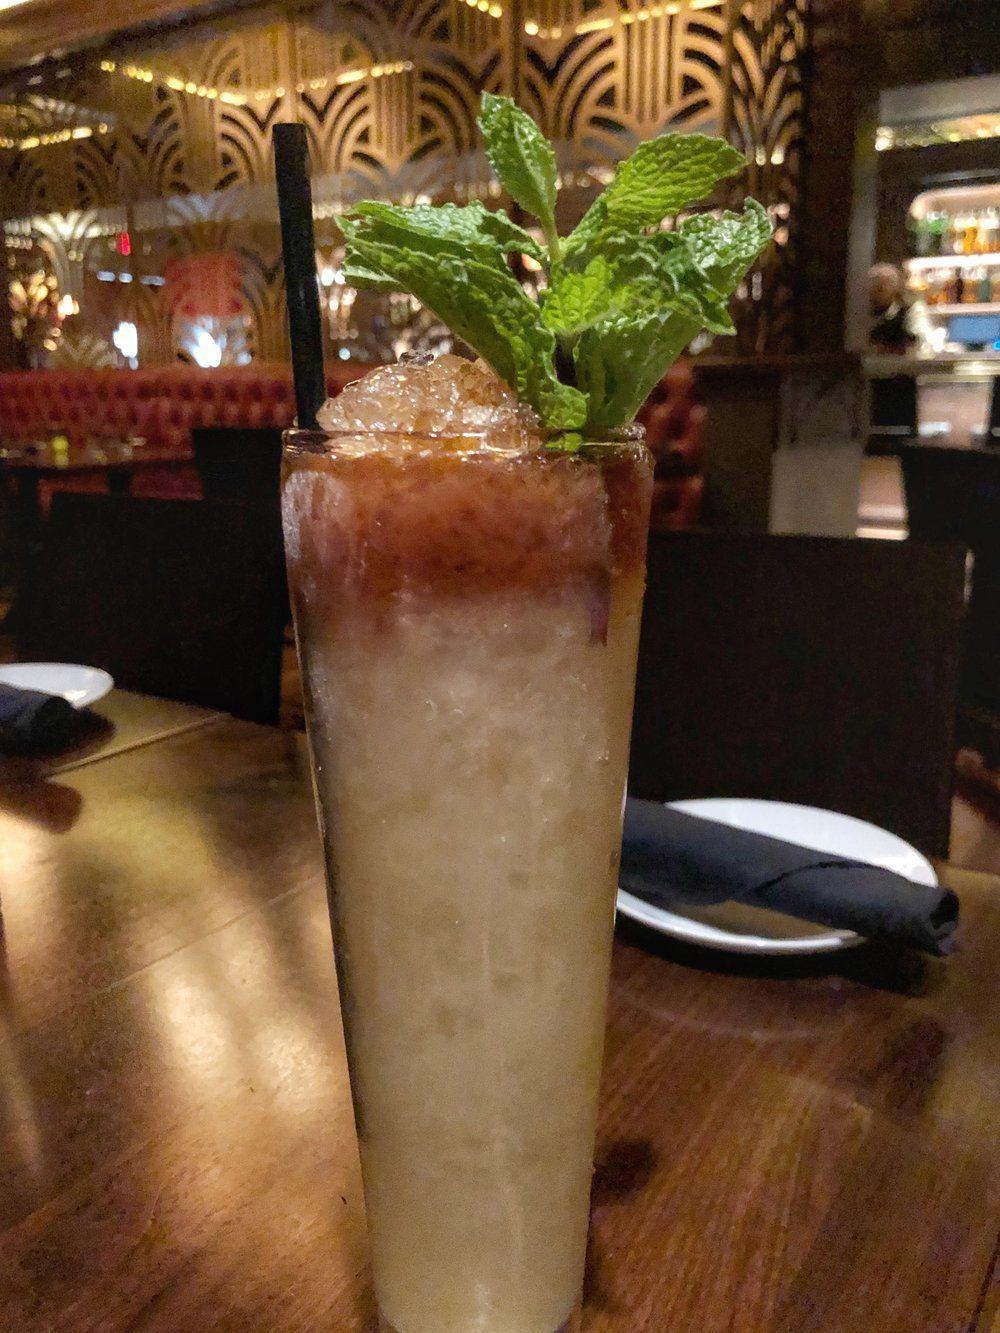 The Queen City Swizzle - Dragon Moonshine rum, green chartreuse, mint, sugar, angostura bitters, served over crushed ice